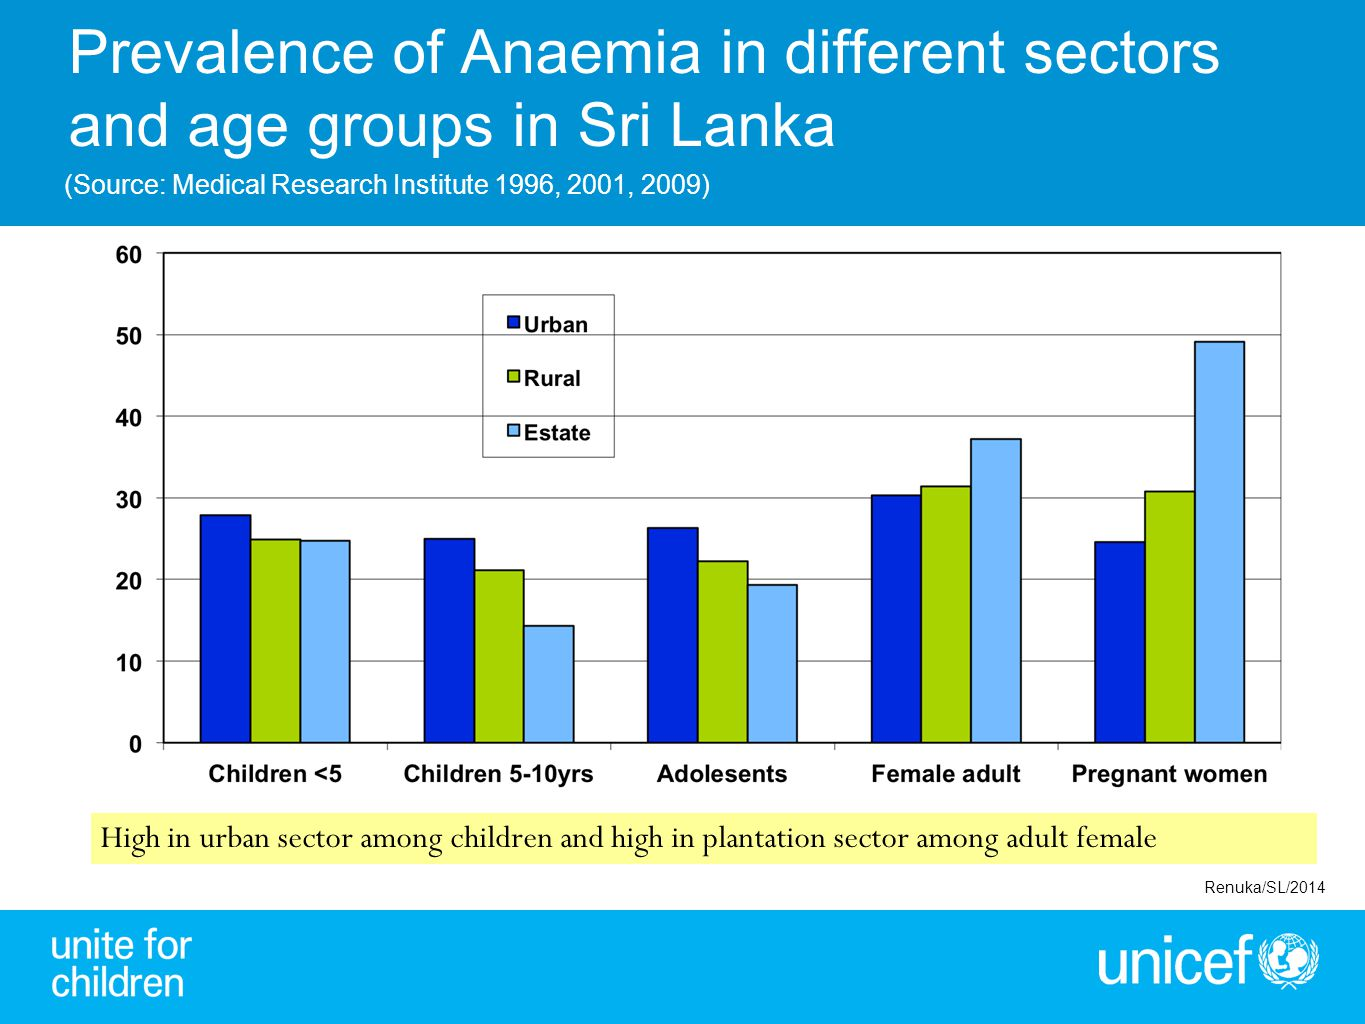 Prevalence of Anaemia in different sectors and age groups in Sri Lanka (Source: Medical Research Institute 1996, 2001, 2009) High in urban sector amon